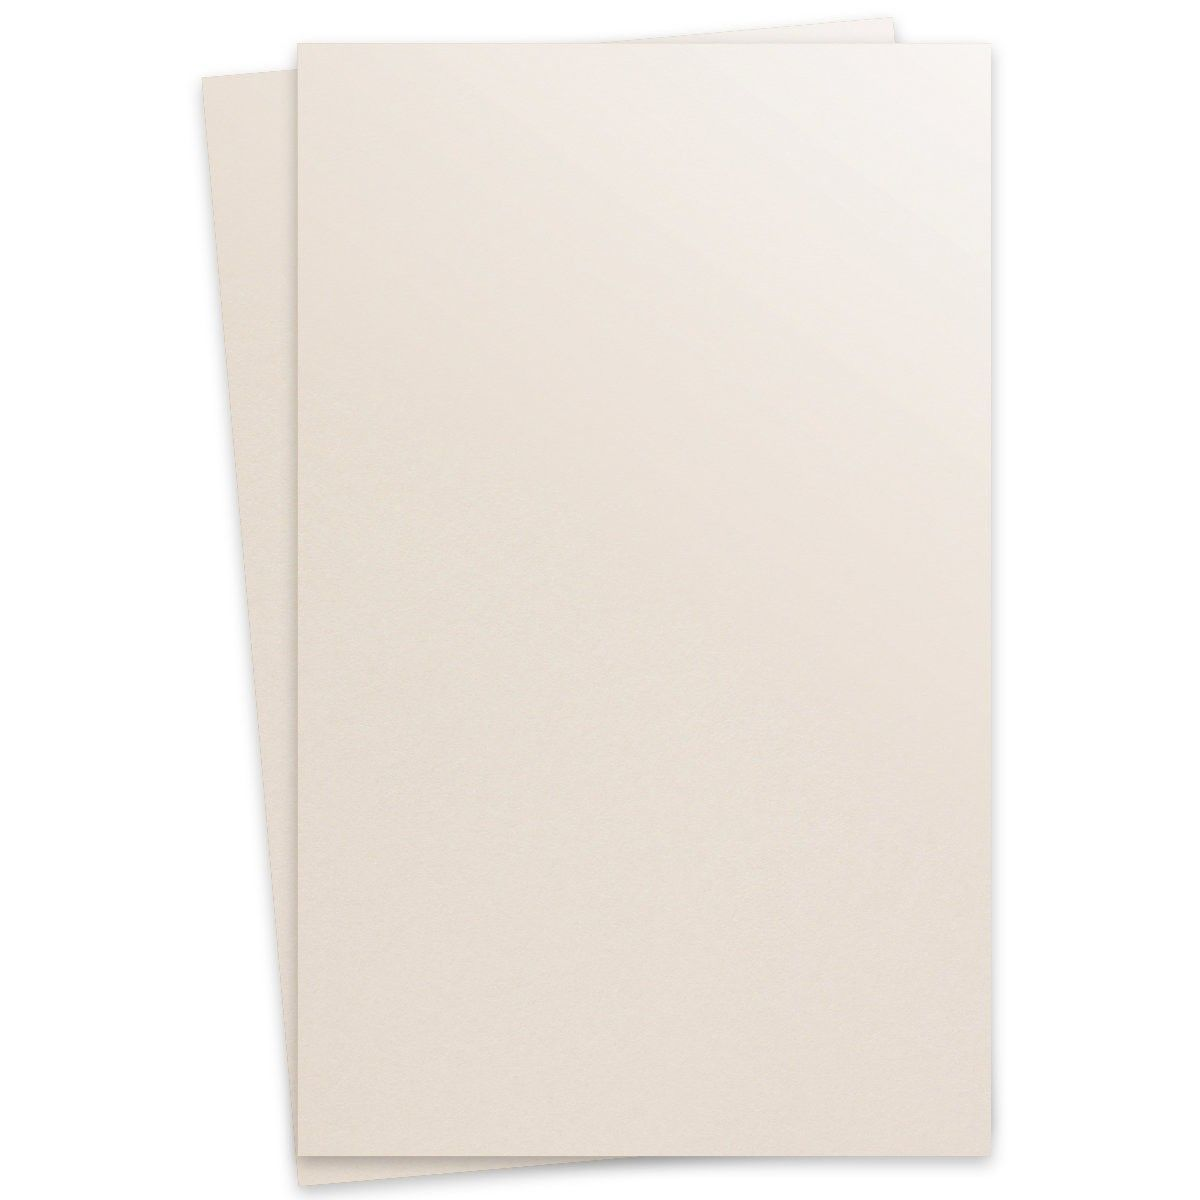 Curious Metallic Virtual Pearl 11x17 Card Stock Paper 89lb Cover 100 Pk In 2020 Paper Cardstock Paper Metallic Paper